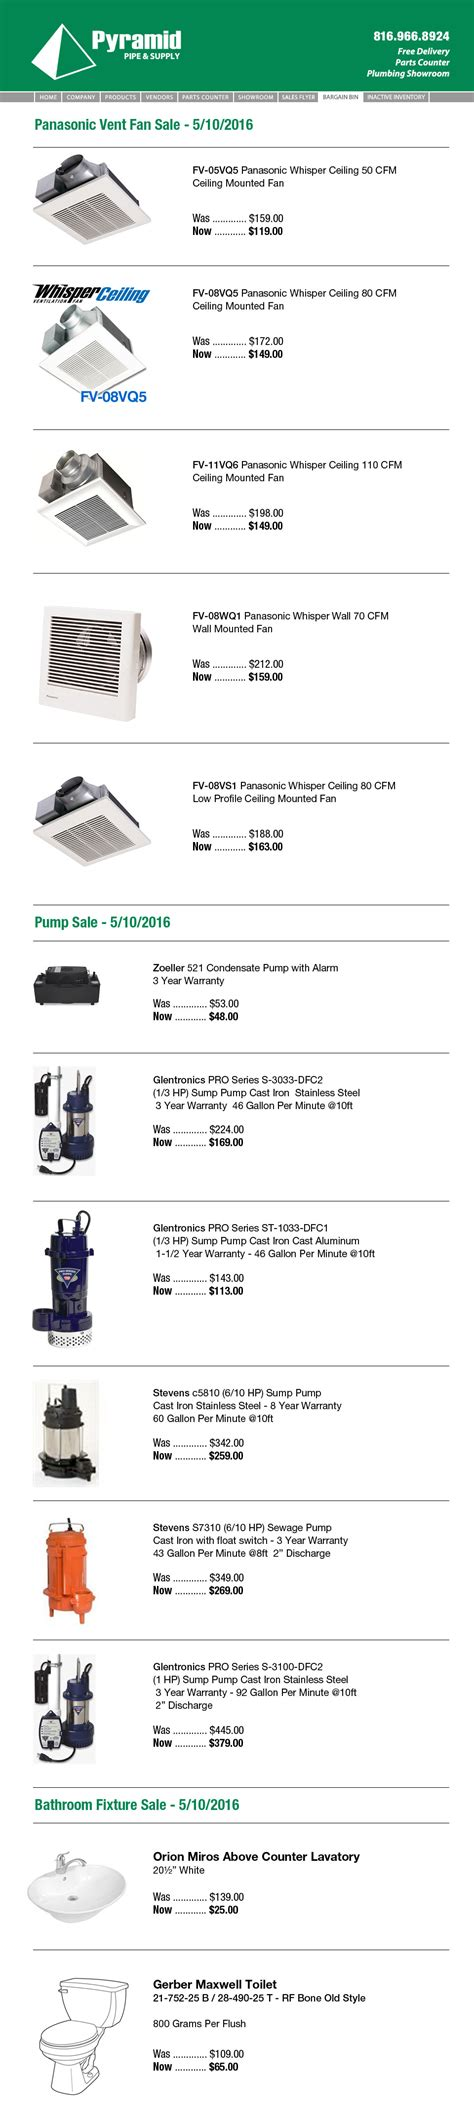 Pyramid Plumbing Supply Plumbing Supplies Excess Inventory Out Pyramid